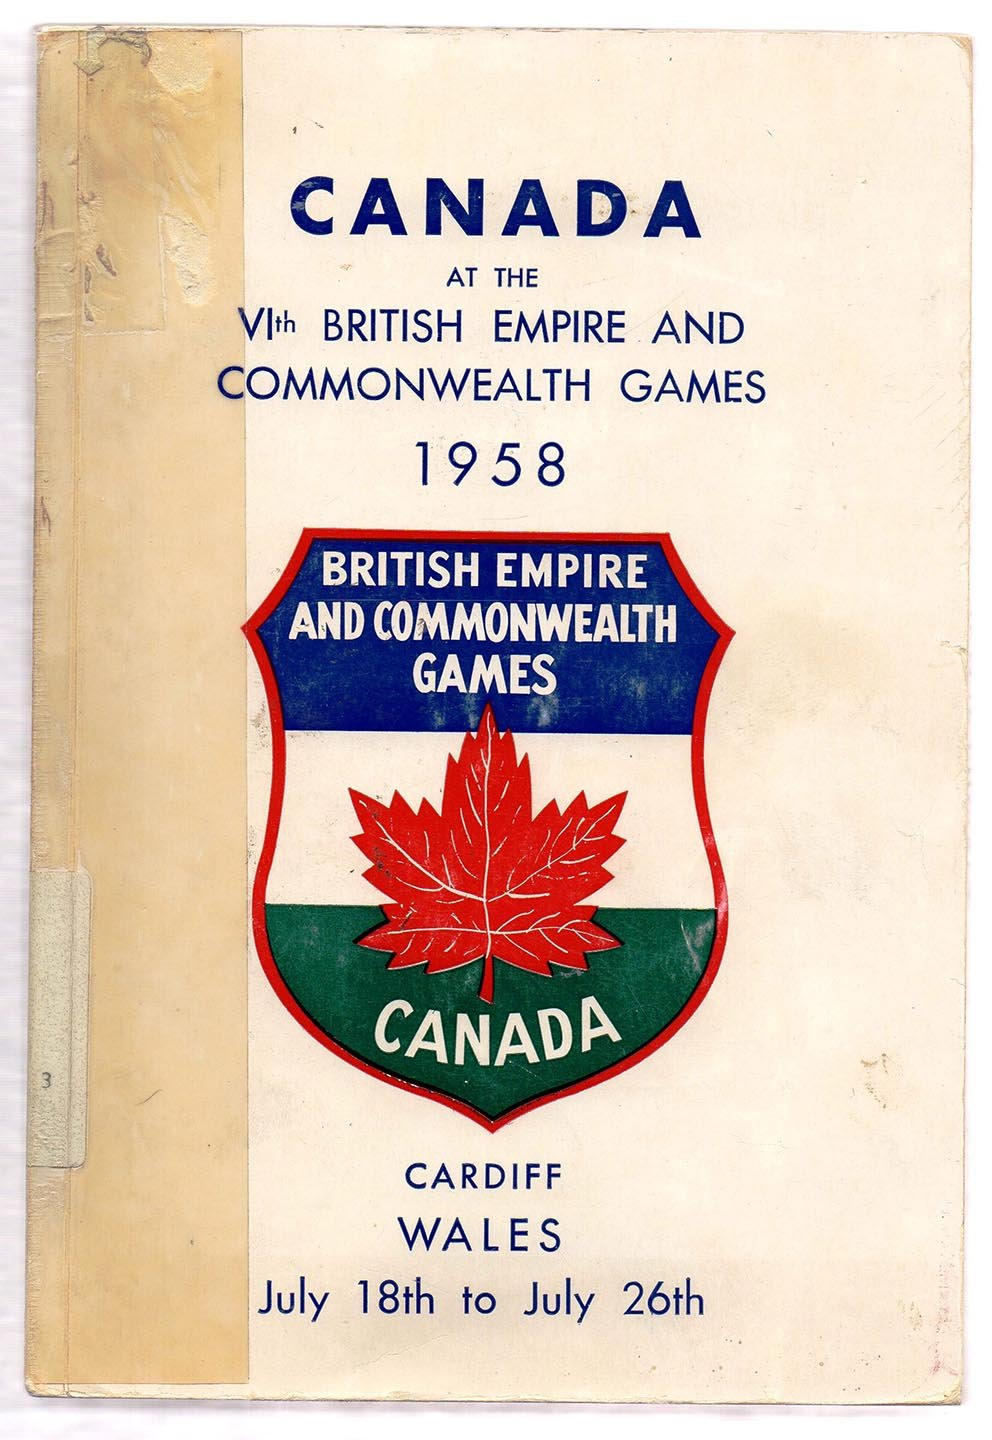 Canada's Part in the 1958 British Empire and Commonwealth Games, Cardiff Glamorgan, Wales, July 18th to July 26th